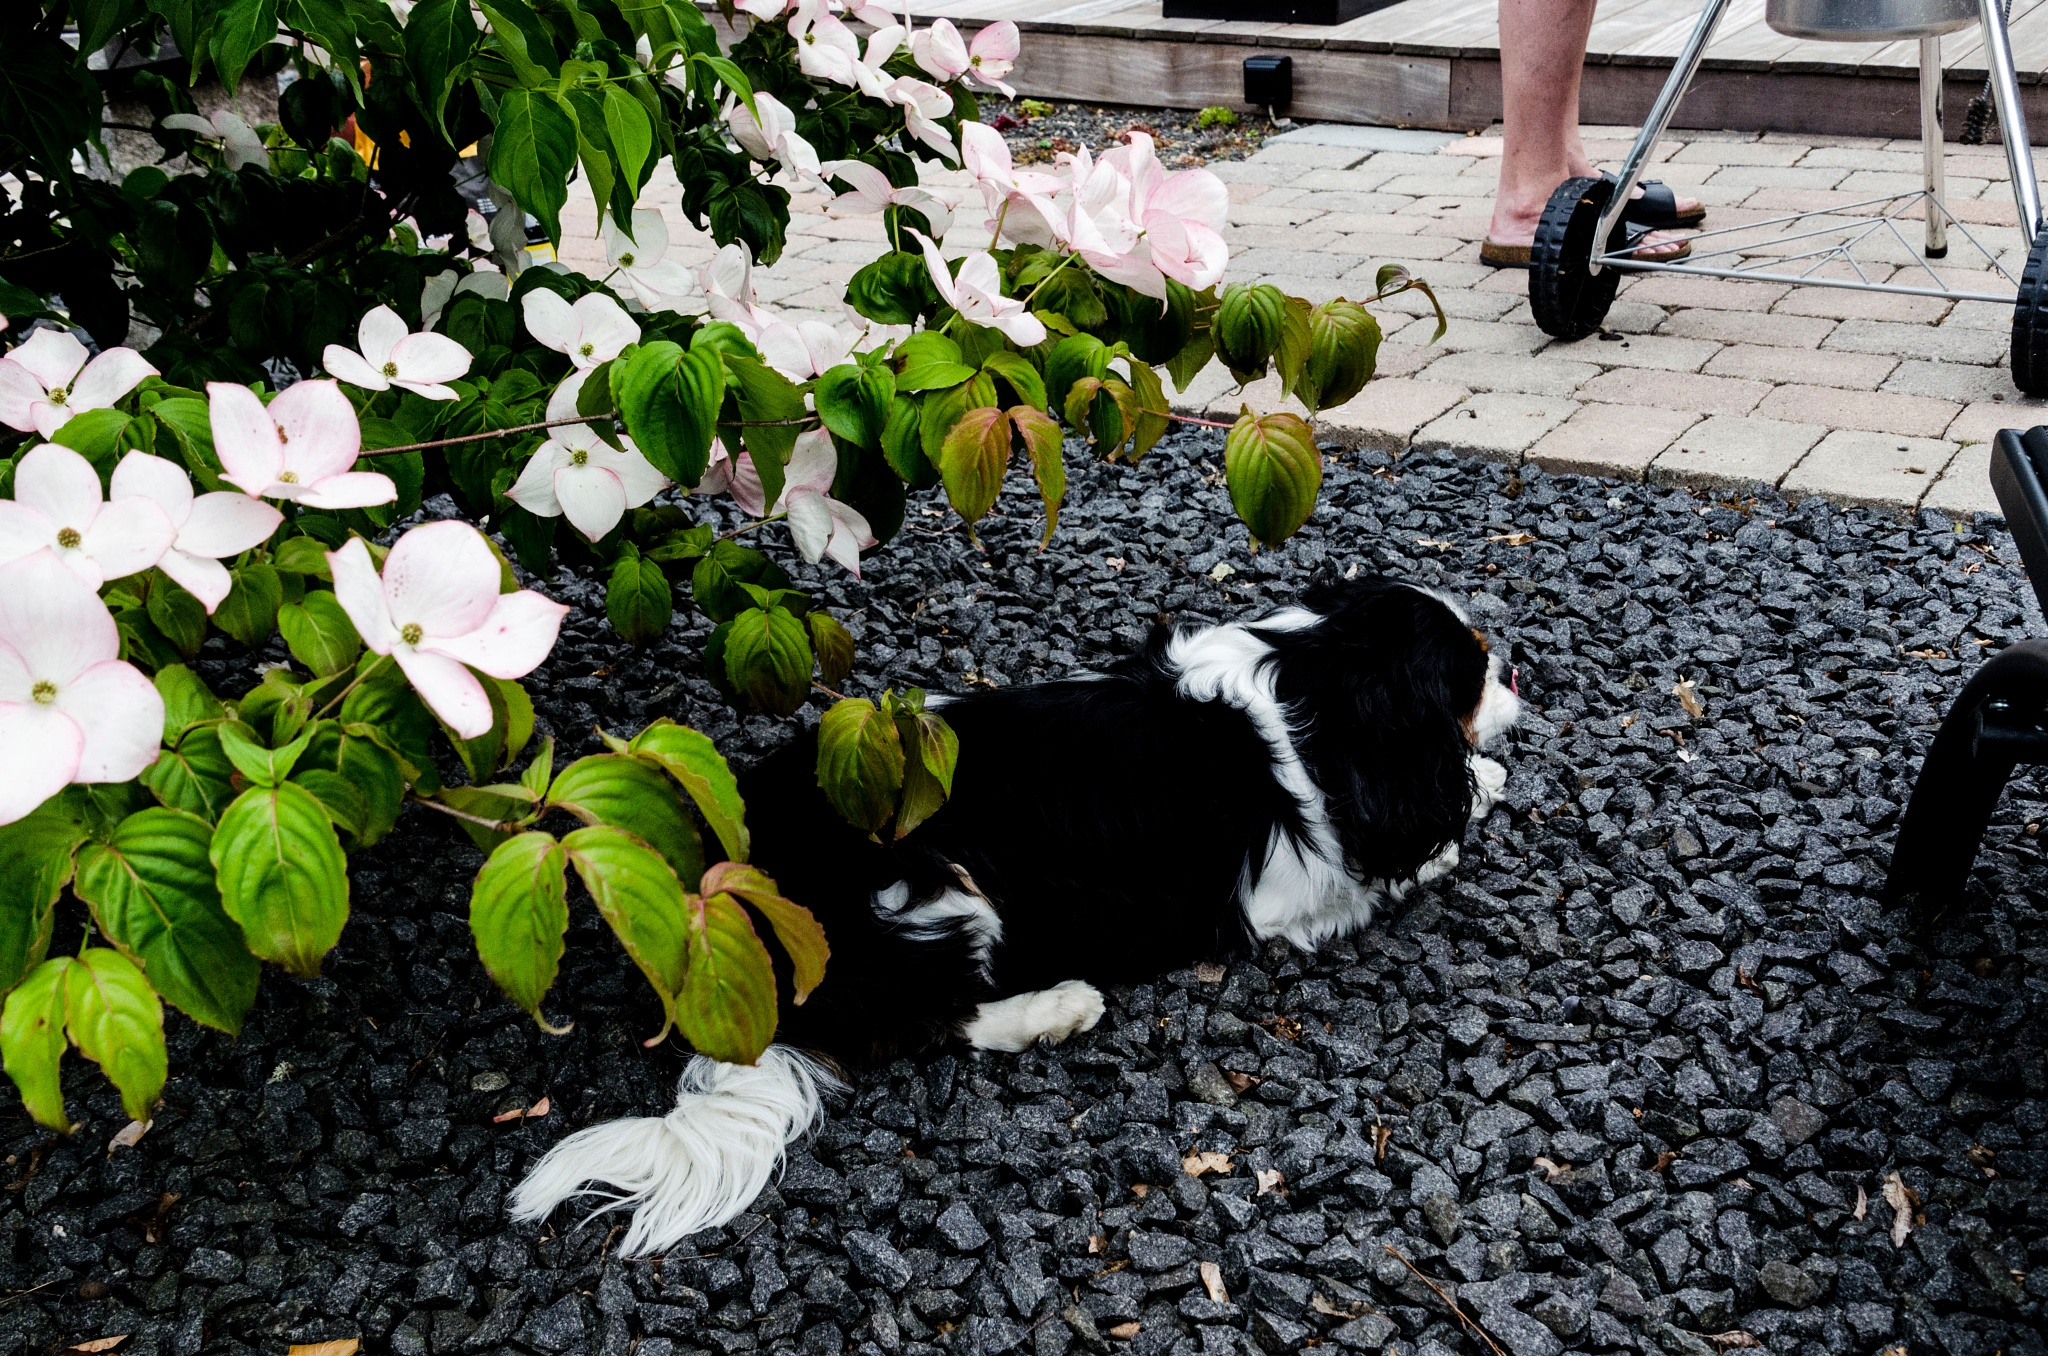 The dog resting under a flowering shrub by Johnny Lythell